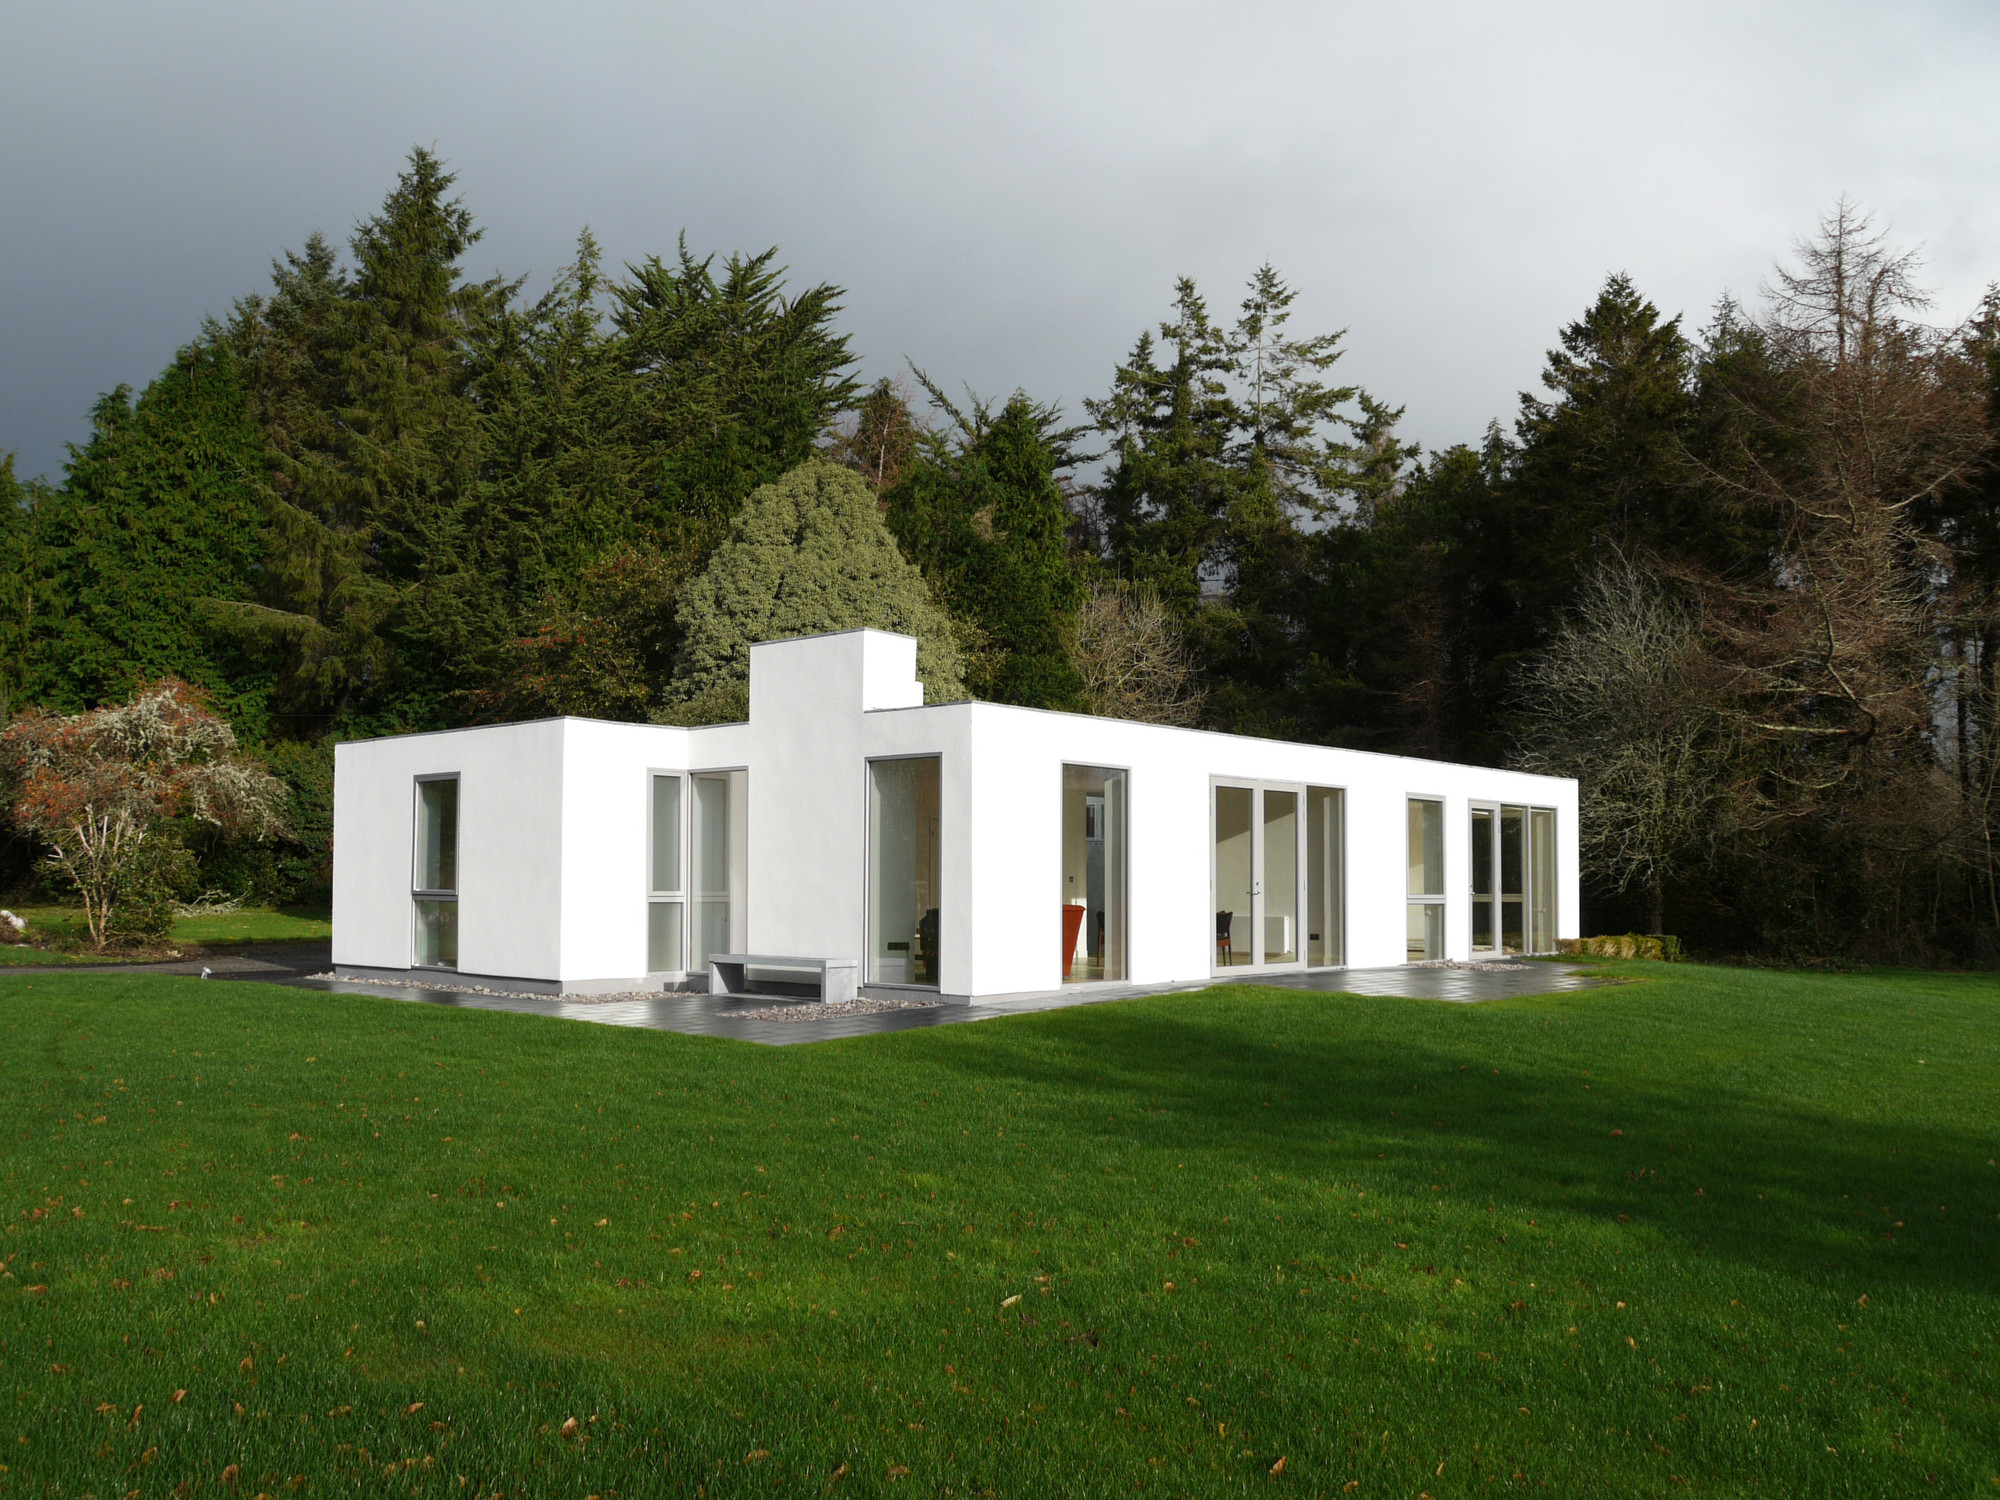 Kerry House / Carson and Crushell Architects, Courtesy of Carson and Crushell Architects